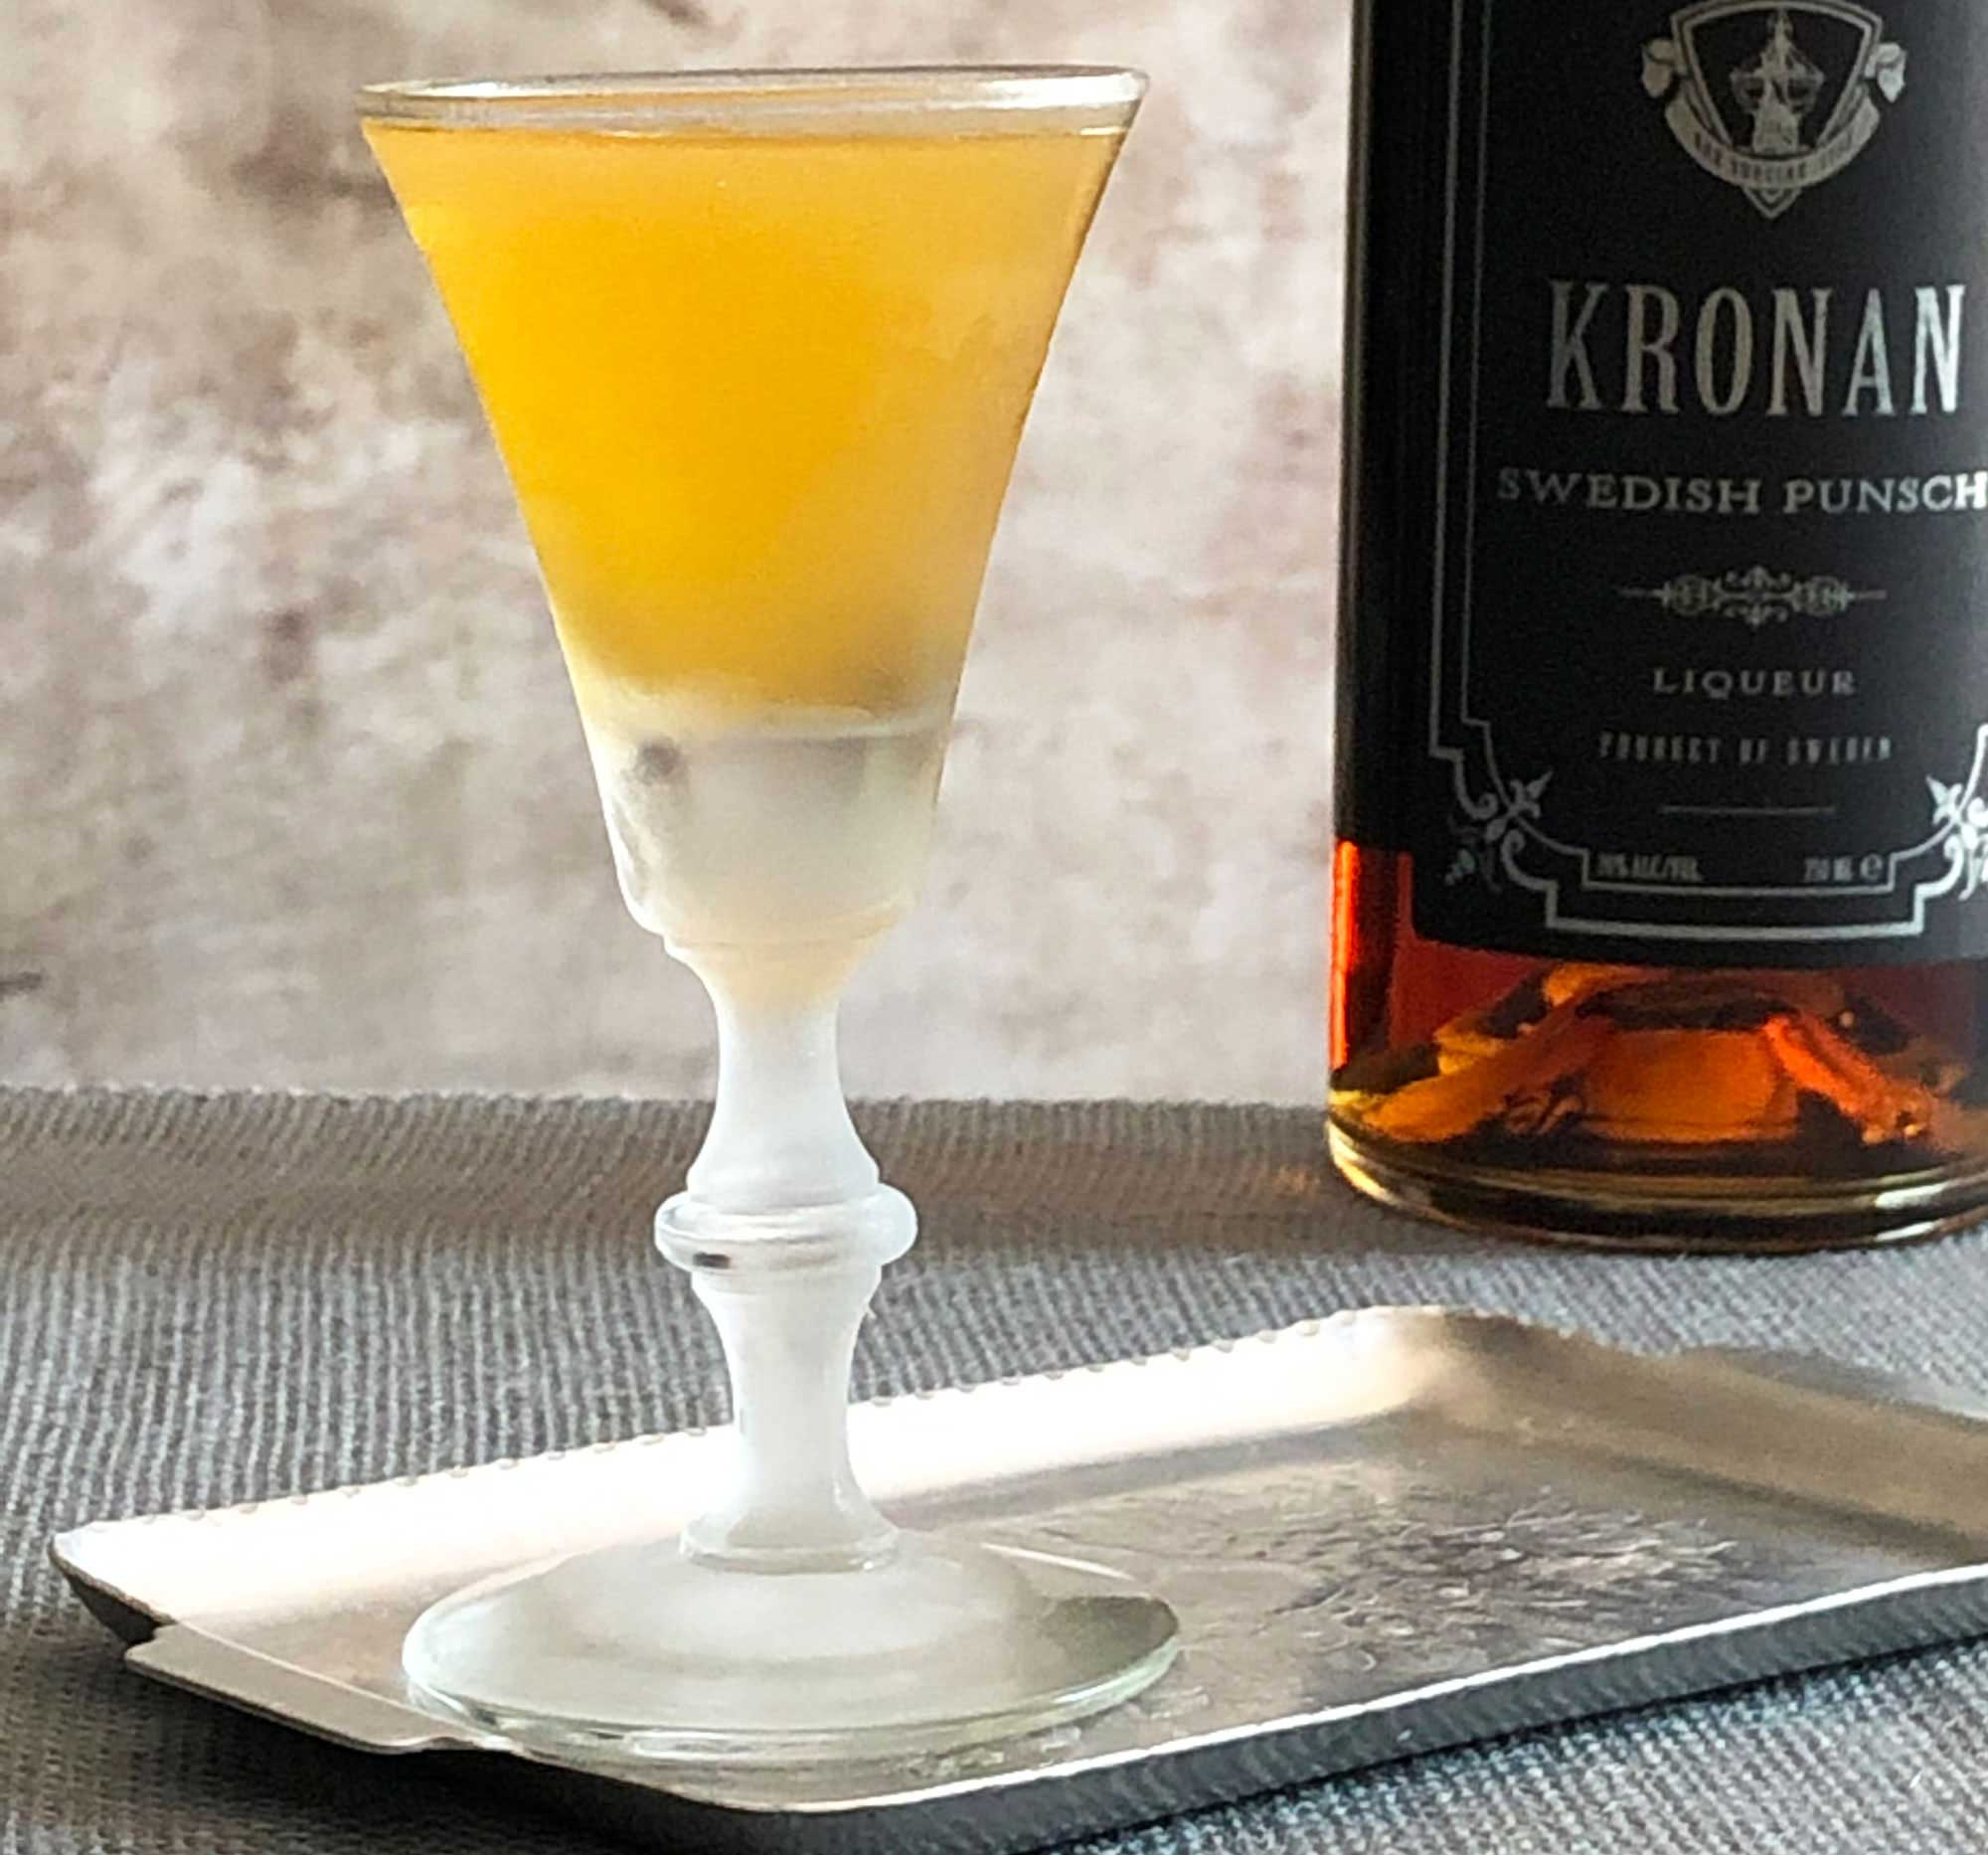 An example of the Tangier Nights, the mixed drink (cocktail), by By Freddy Janowitz, featuring Kronan Swedish Punsch, cognac, and crème de menthe (white); photo by Lee Edwards